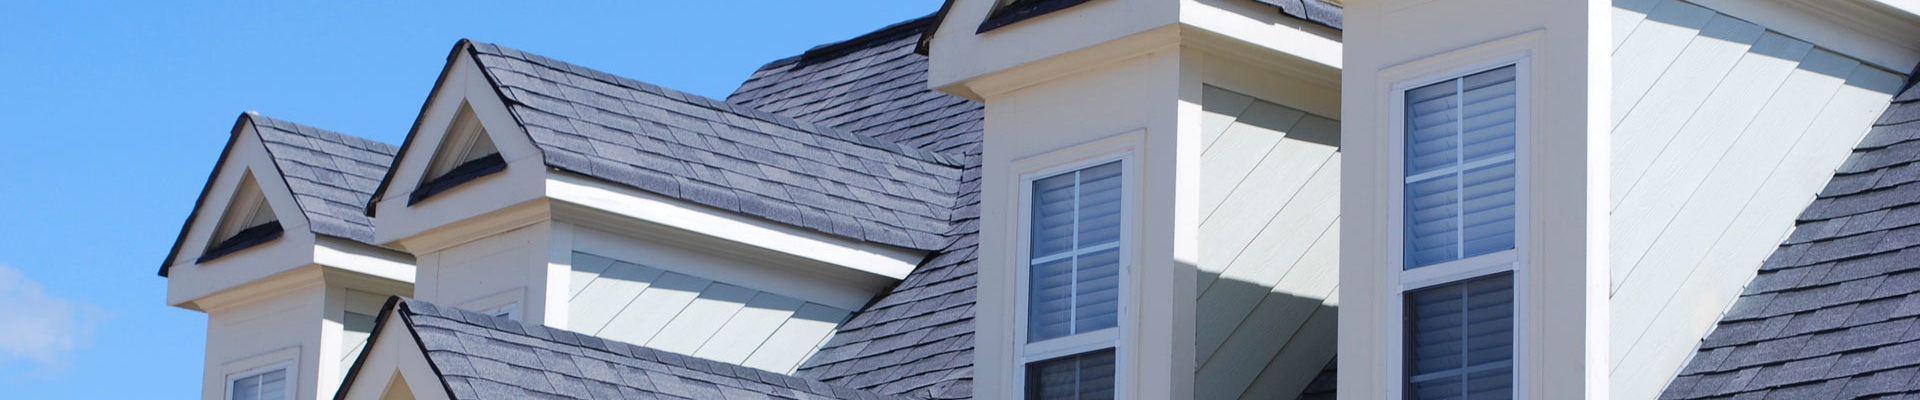 Hiring The Right Commercial Roofing Contractors - Ensuring The Best Service